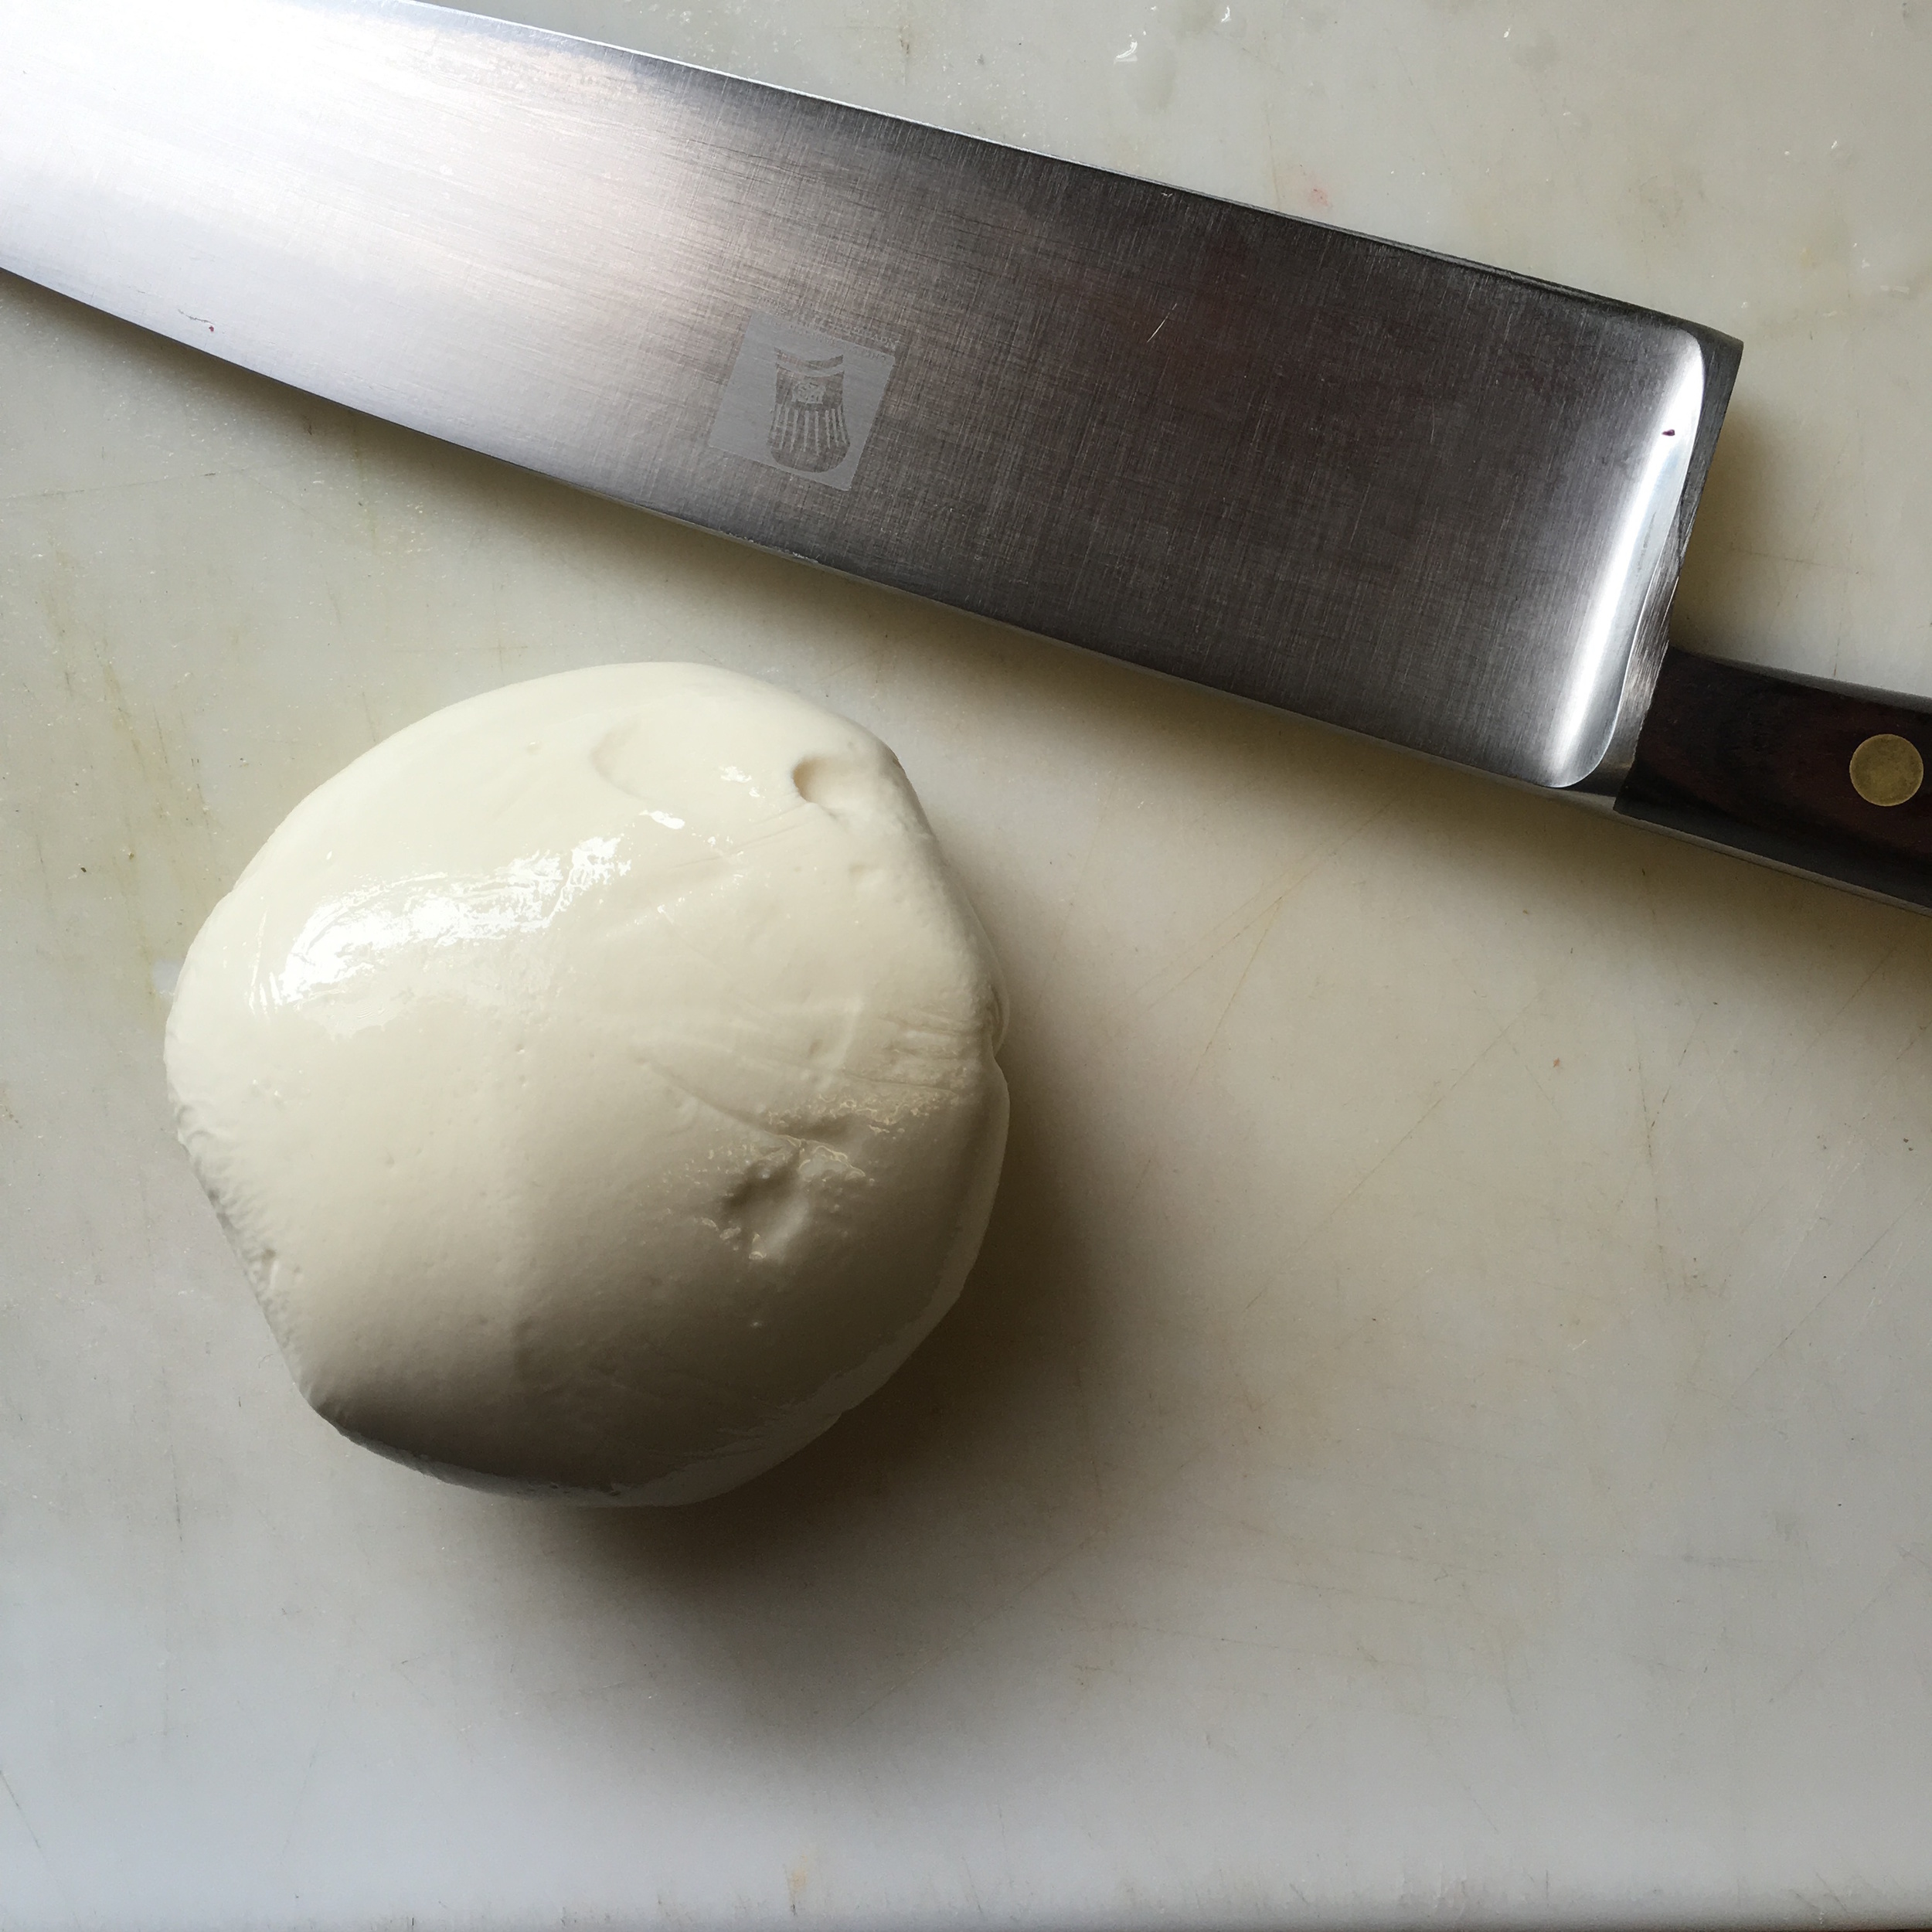 DEFINITELY NOT THE BEST MOZZARELLA I HAVE EVER HAD BUT I AM STILL PROUD OF IT!